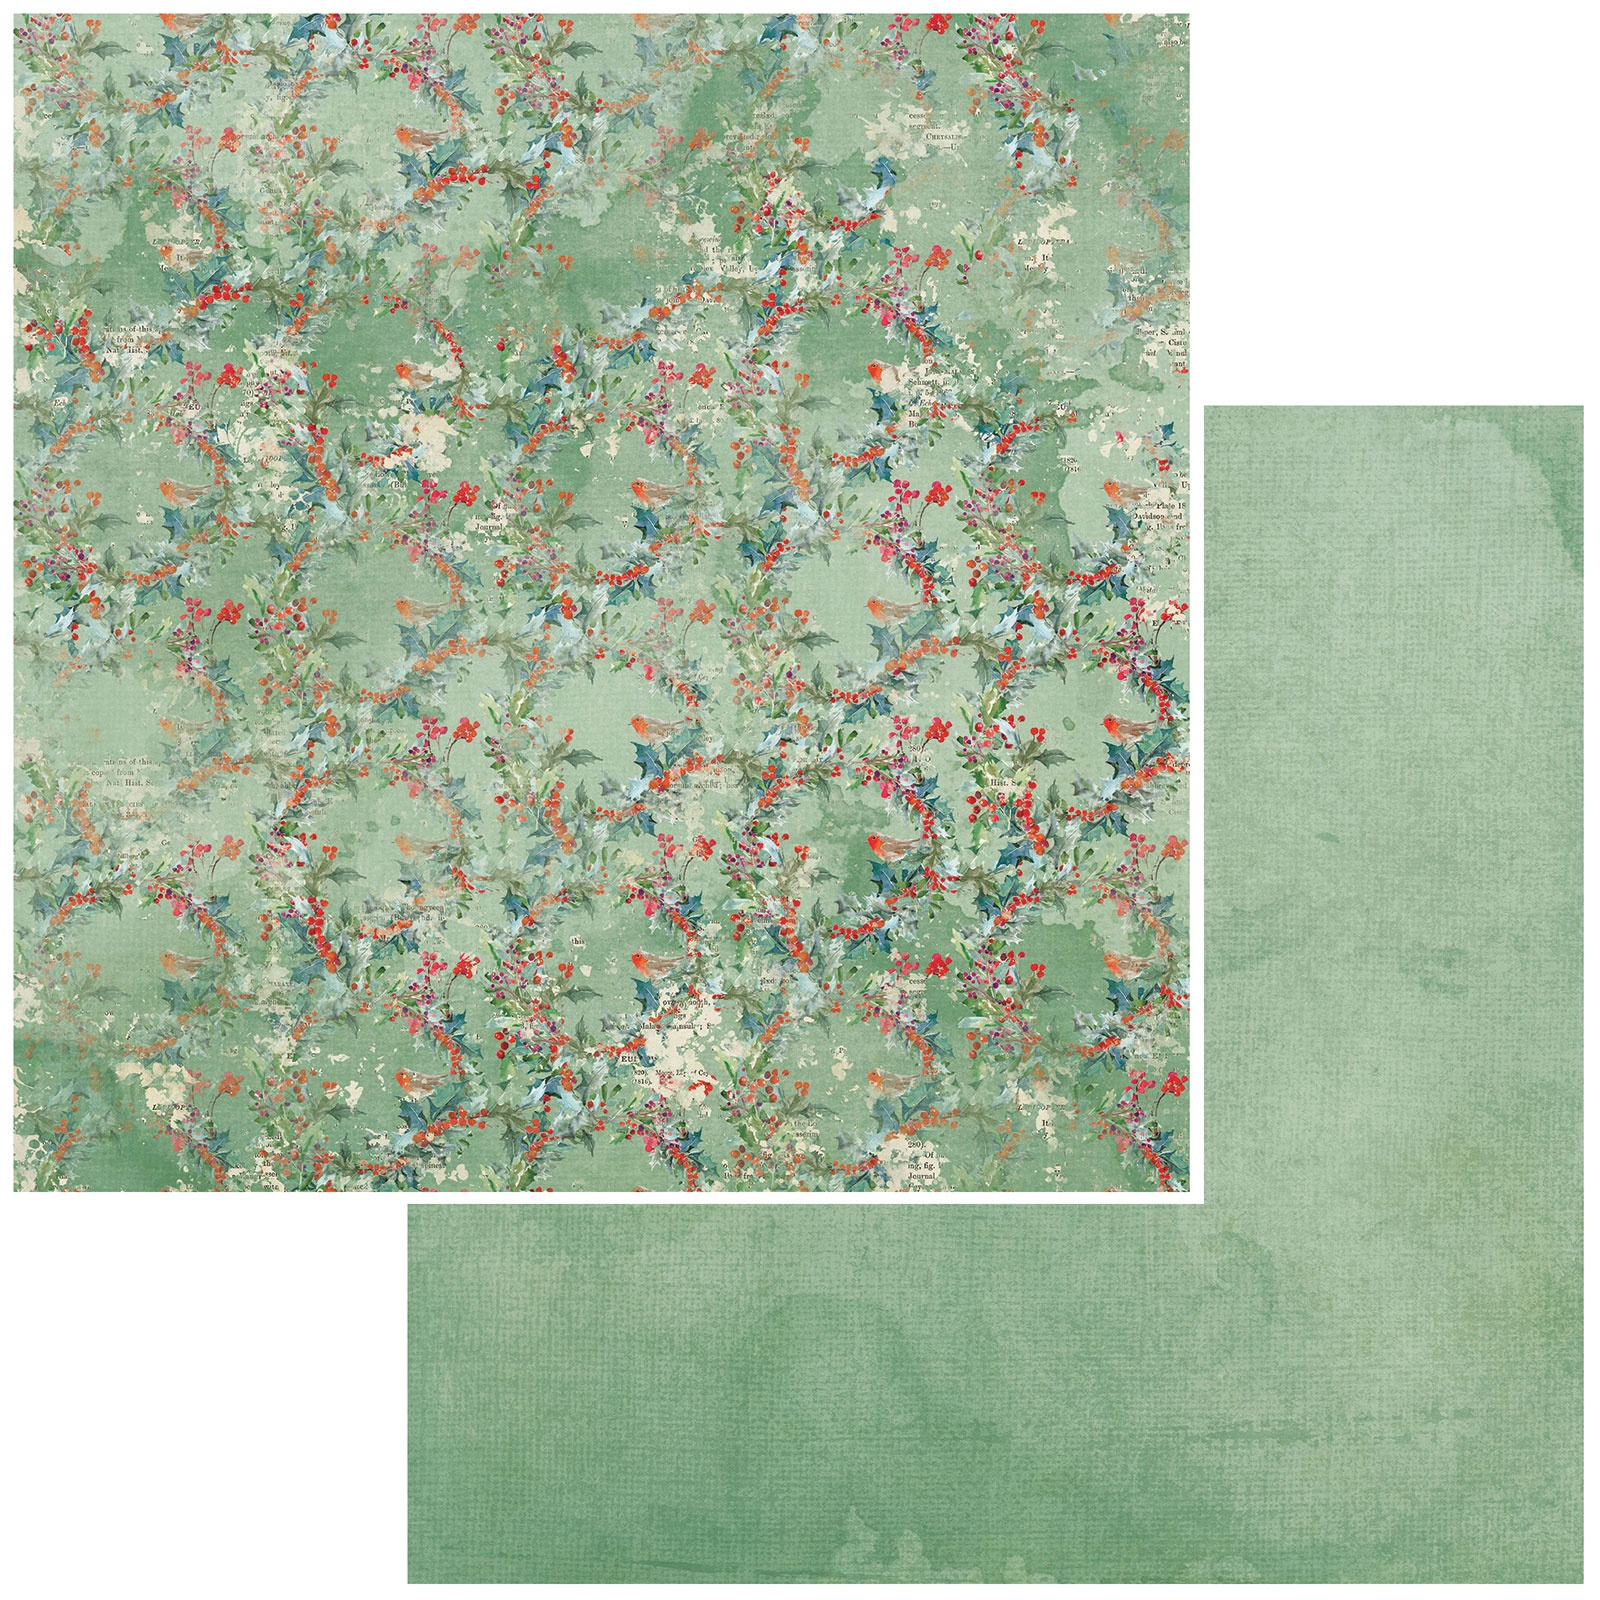 49 And Market - Vintage Artistry Peace & Joy - HOLLY - 12x12 Double-Sided Paper